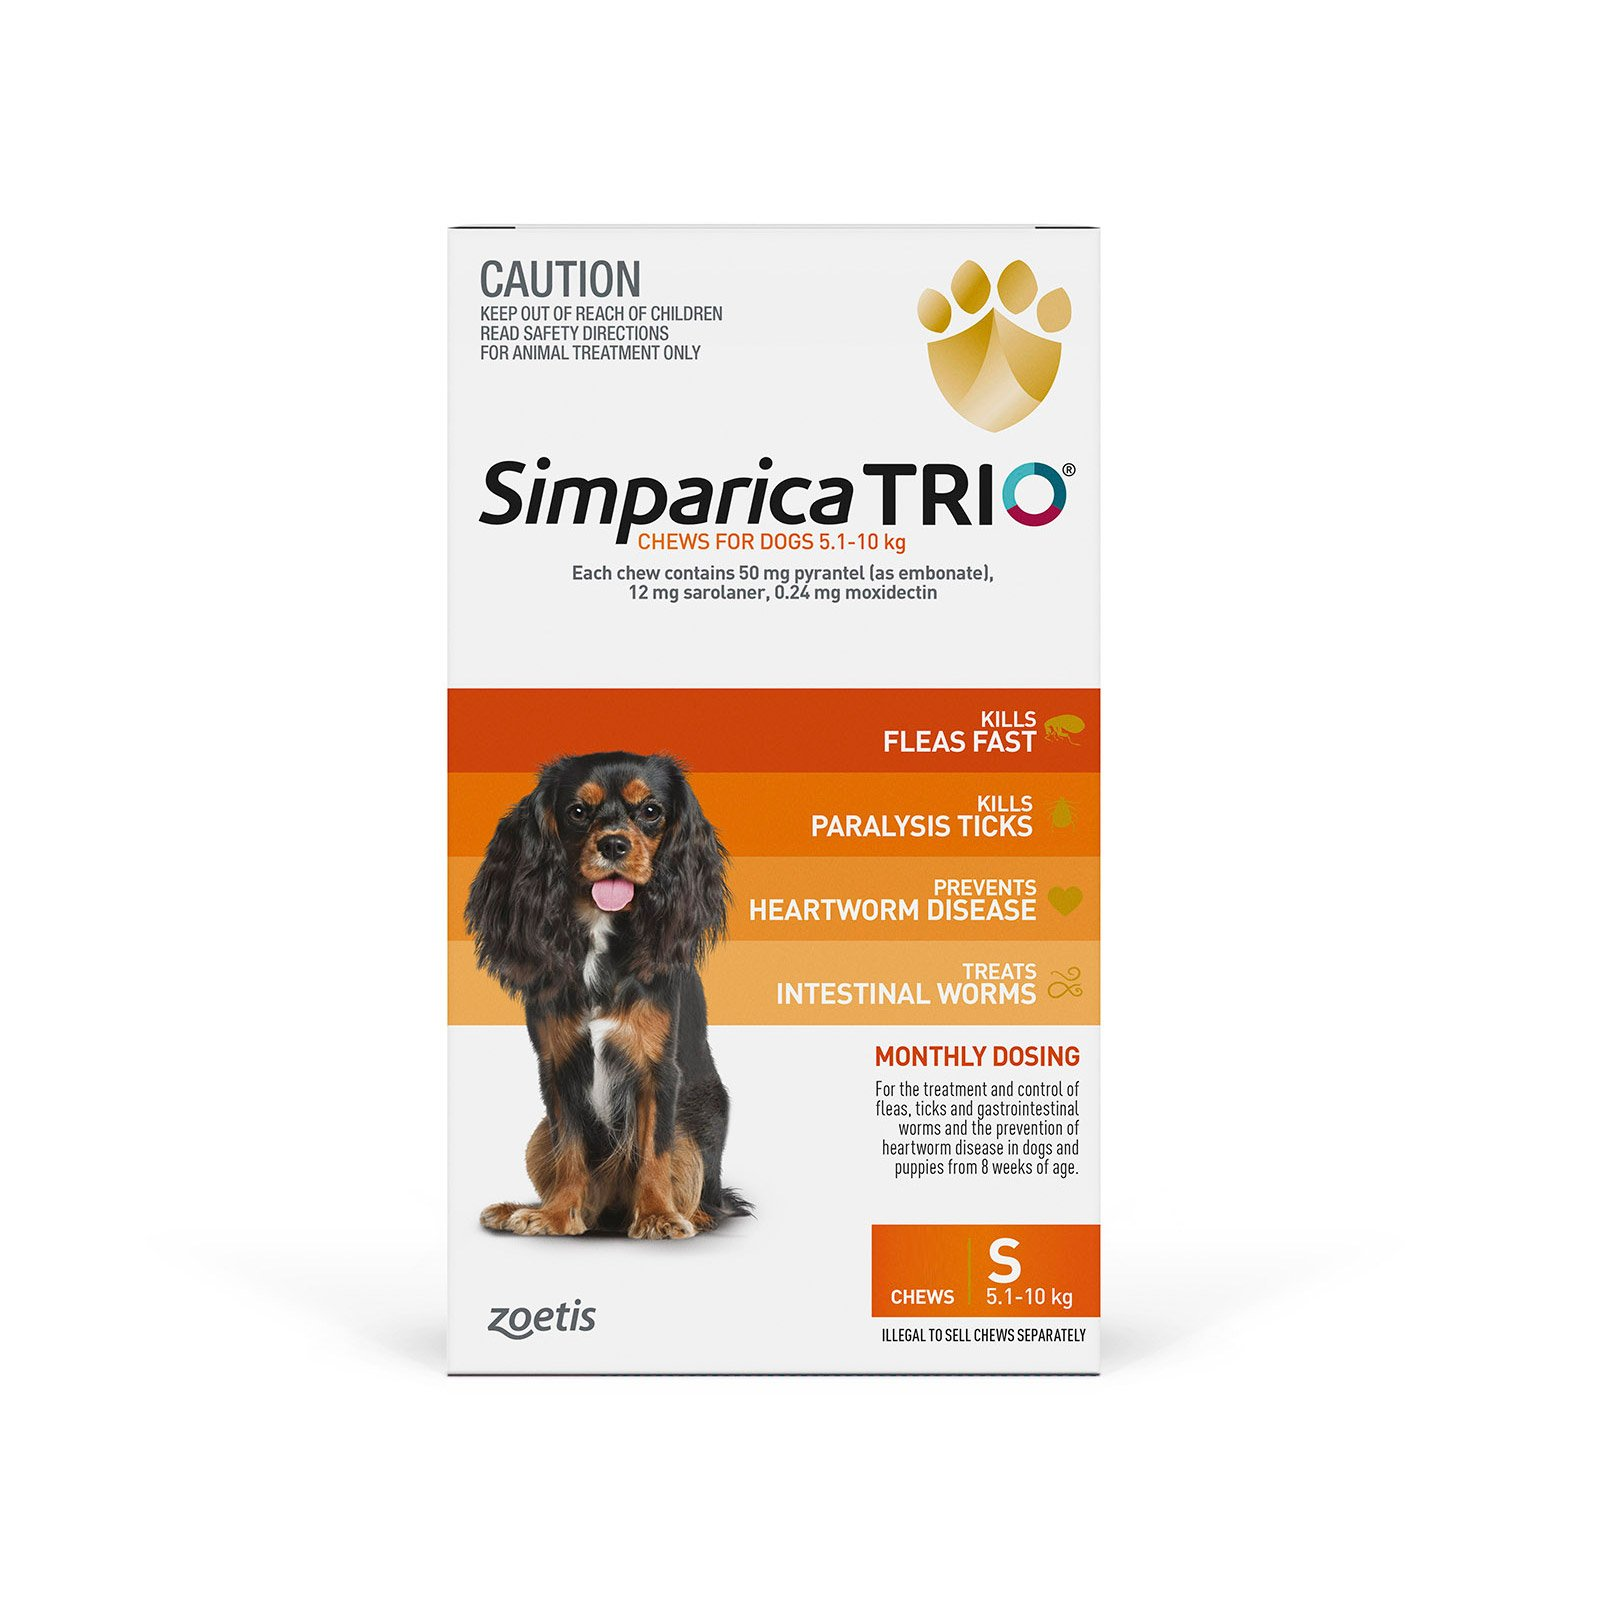 Simparica-trio-chew-for-small-dogs5.1-10kg-orange.jpg